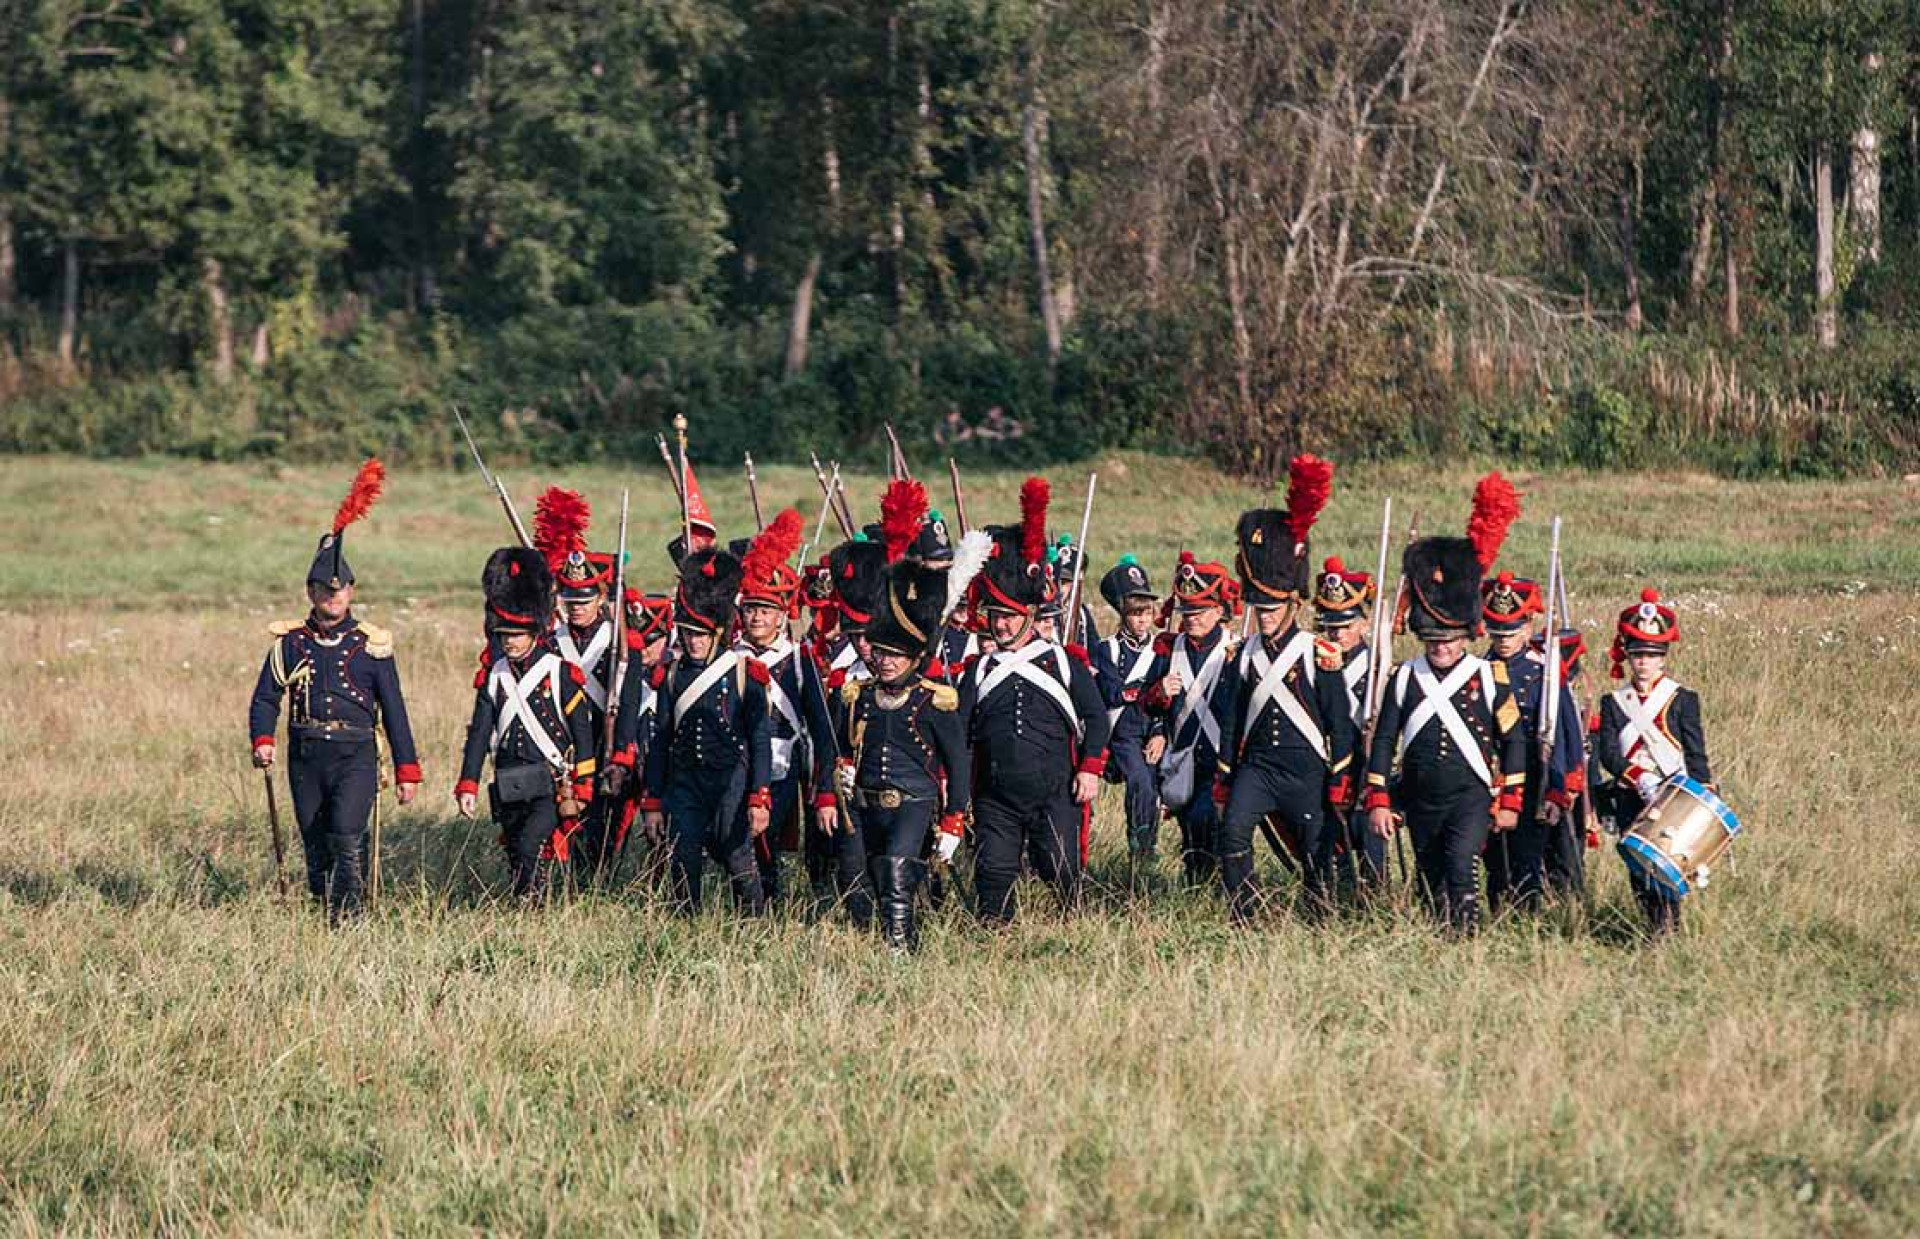 The Battle of Borodino: The Biggest Reenactment in Europe, in Photos